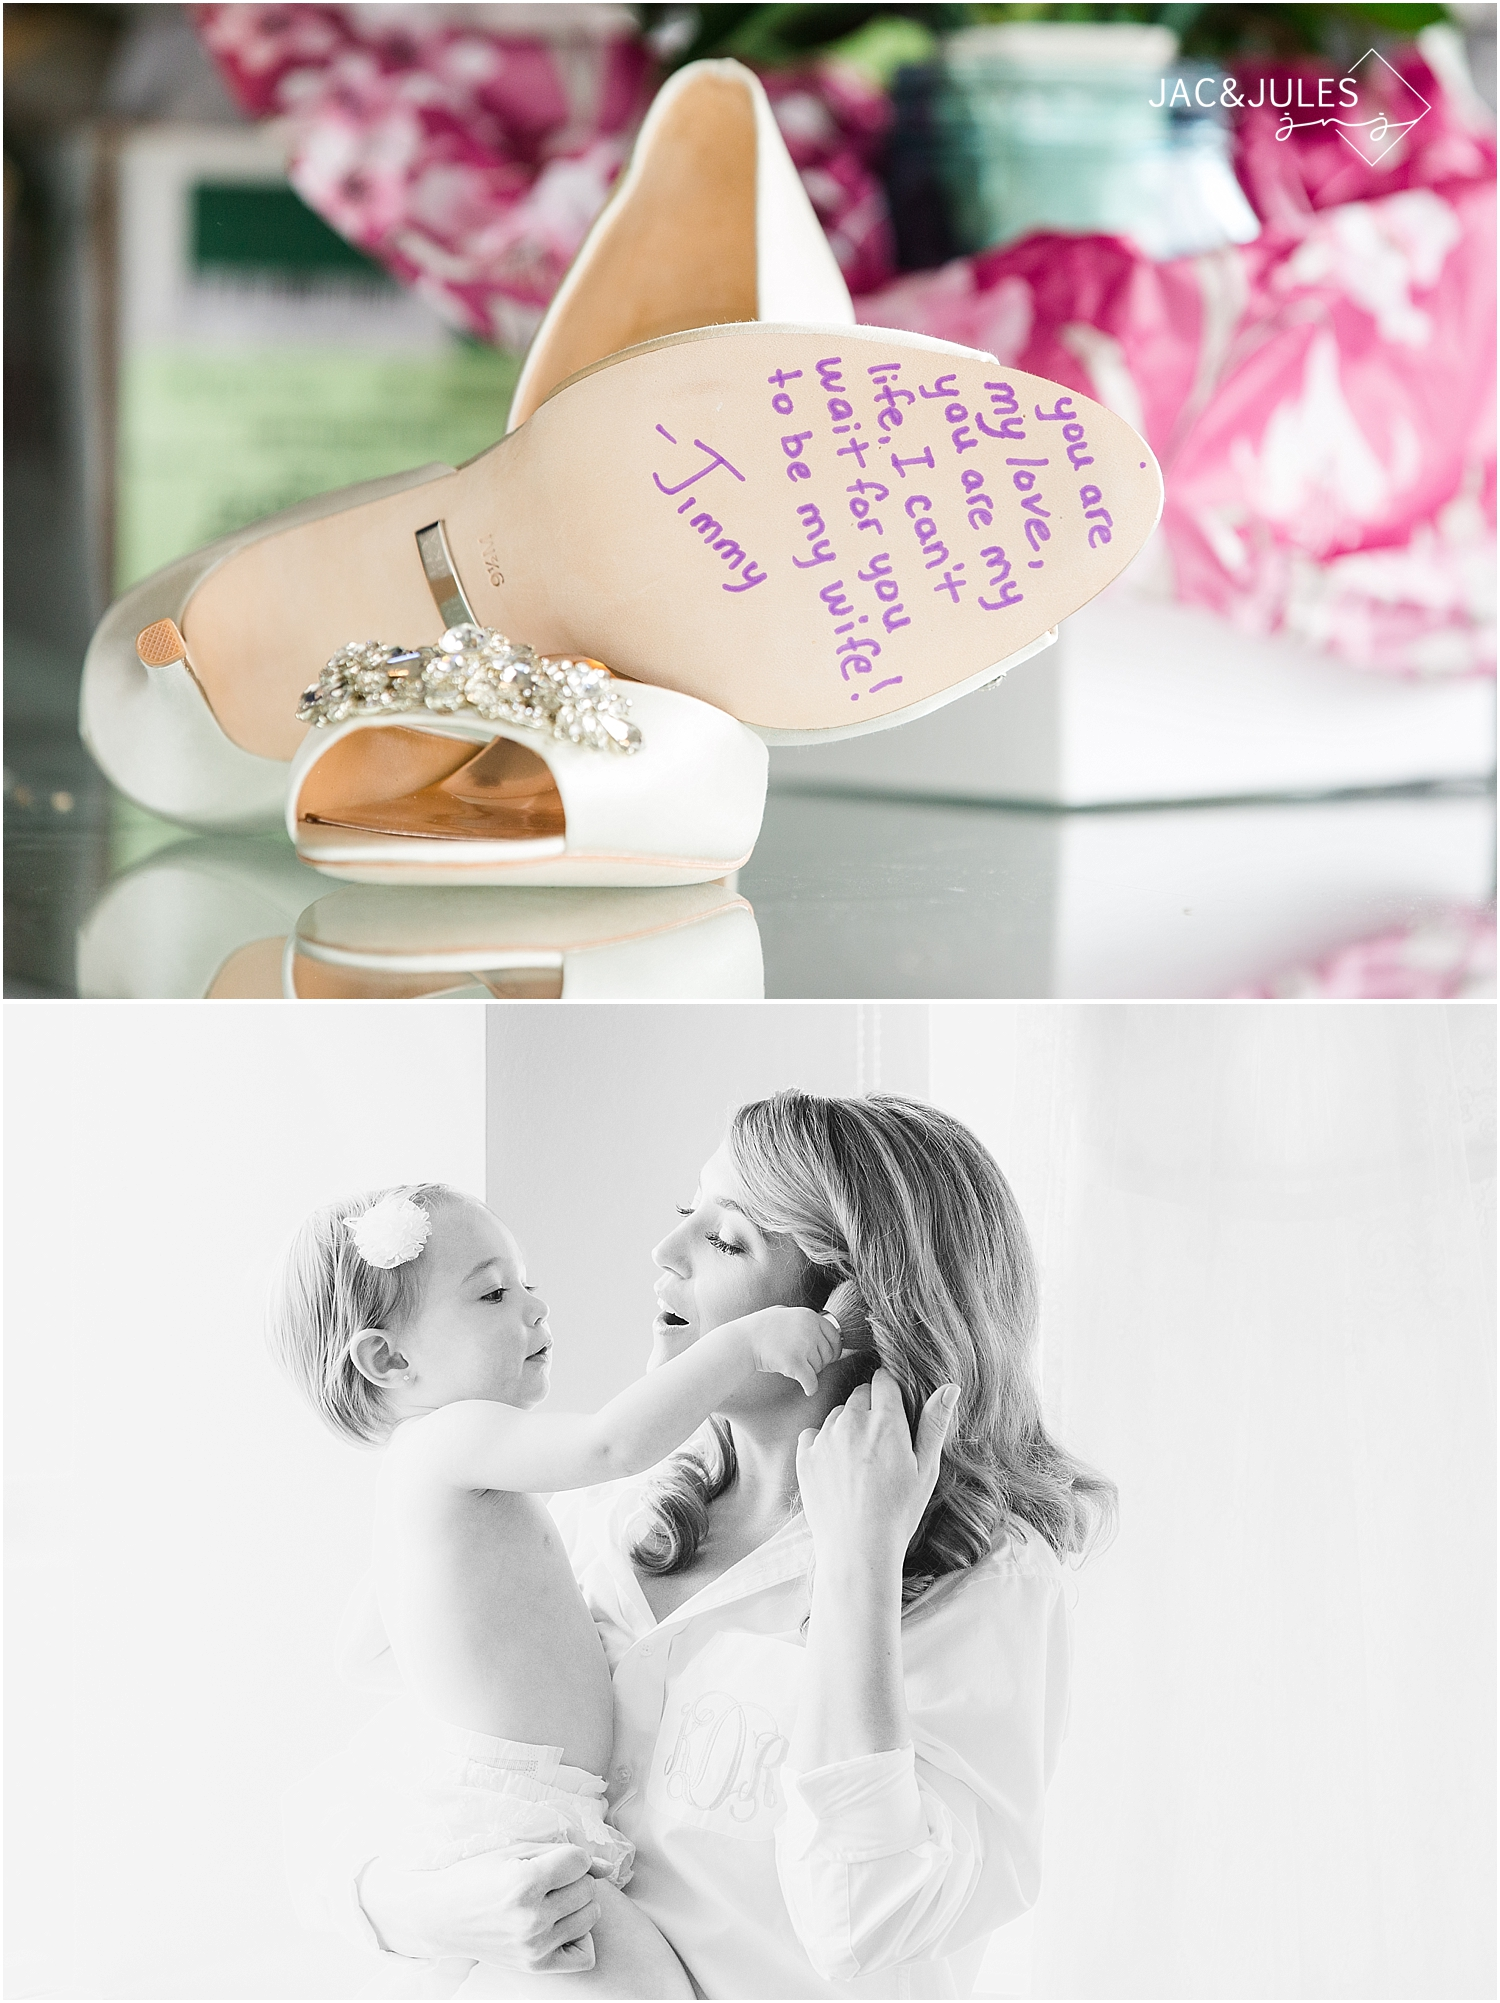 jacnjules photographs brides shoes and flower girl at Oyster Point